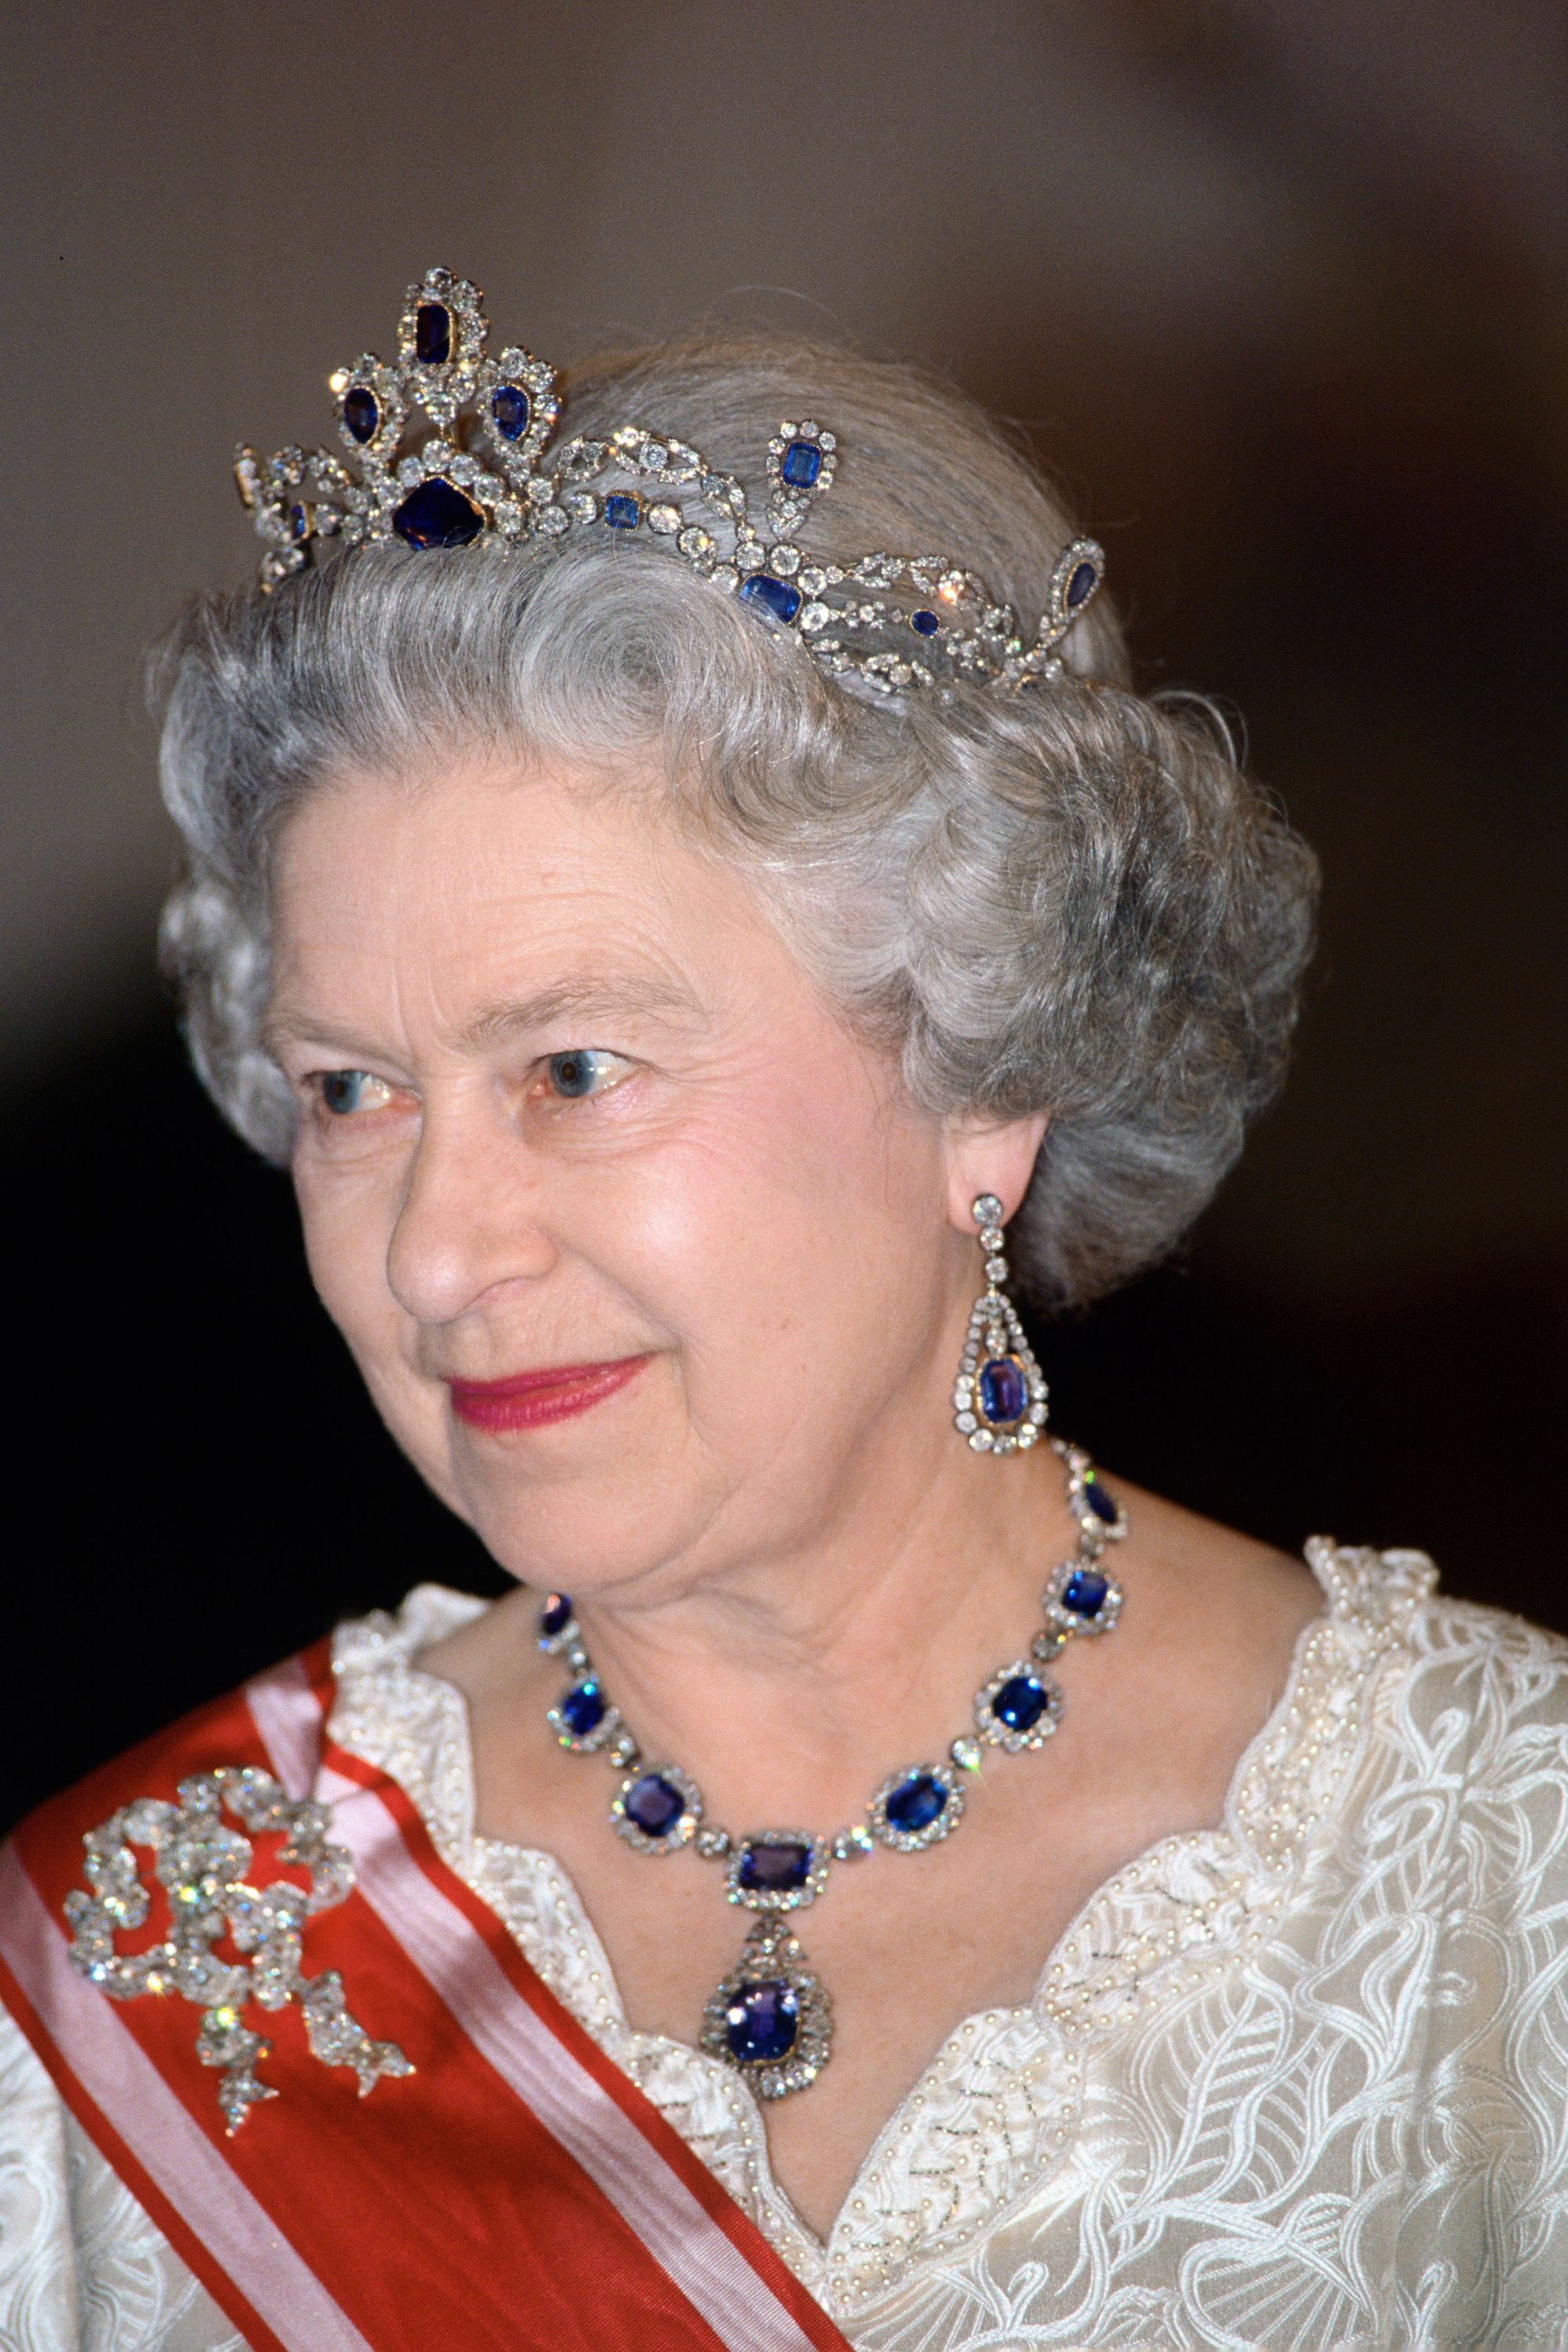 Best Royal Family Jewelry of All Time - 30 Most Epic Royal Jewels ...